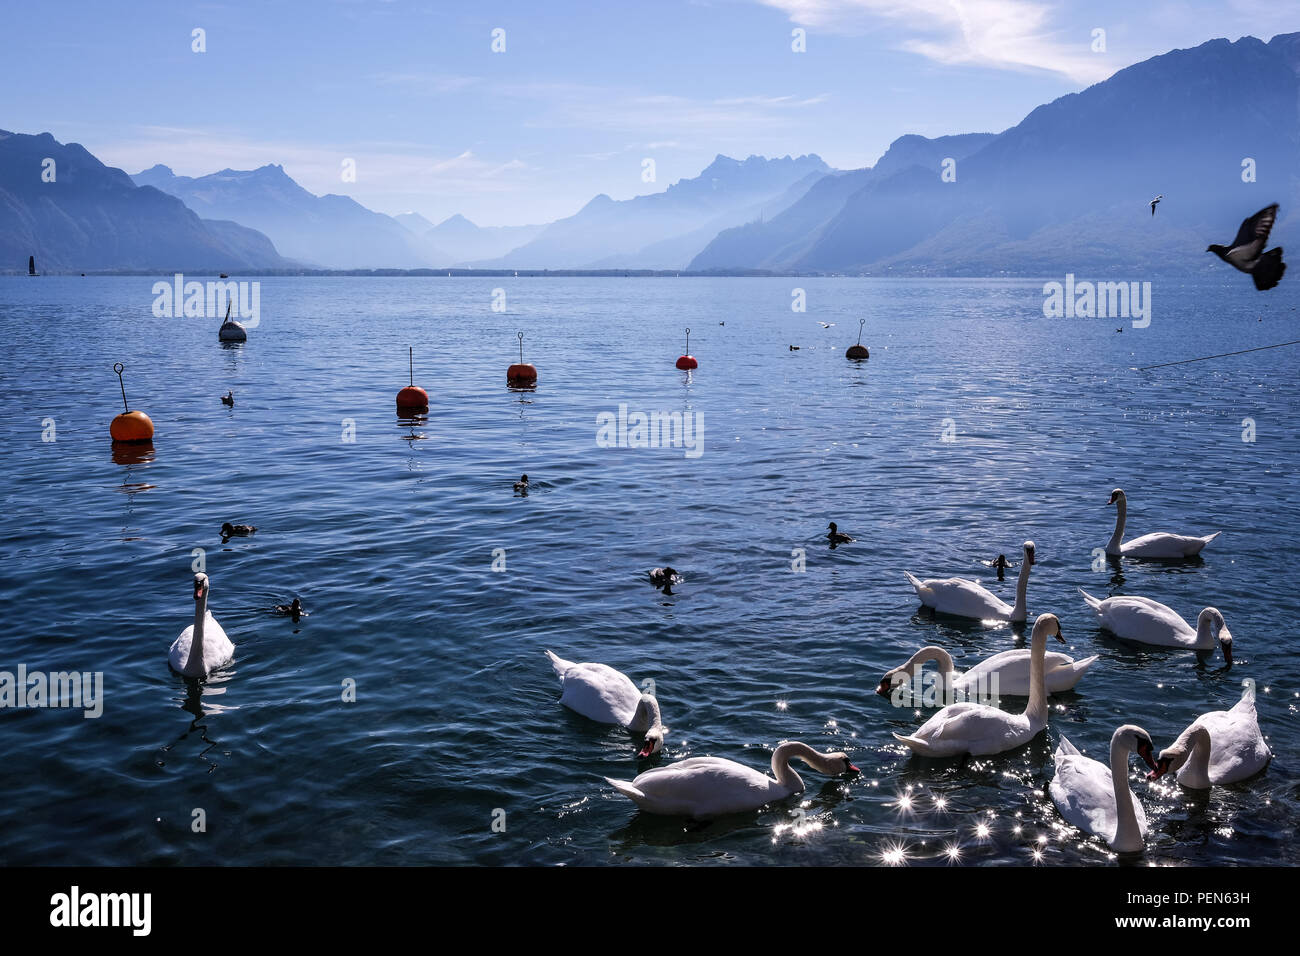 Landscape view of Léman lake near Vevey in Switzerland, with the Alps in the background - Stock Image